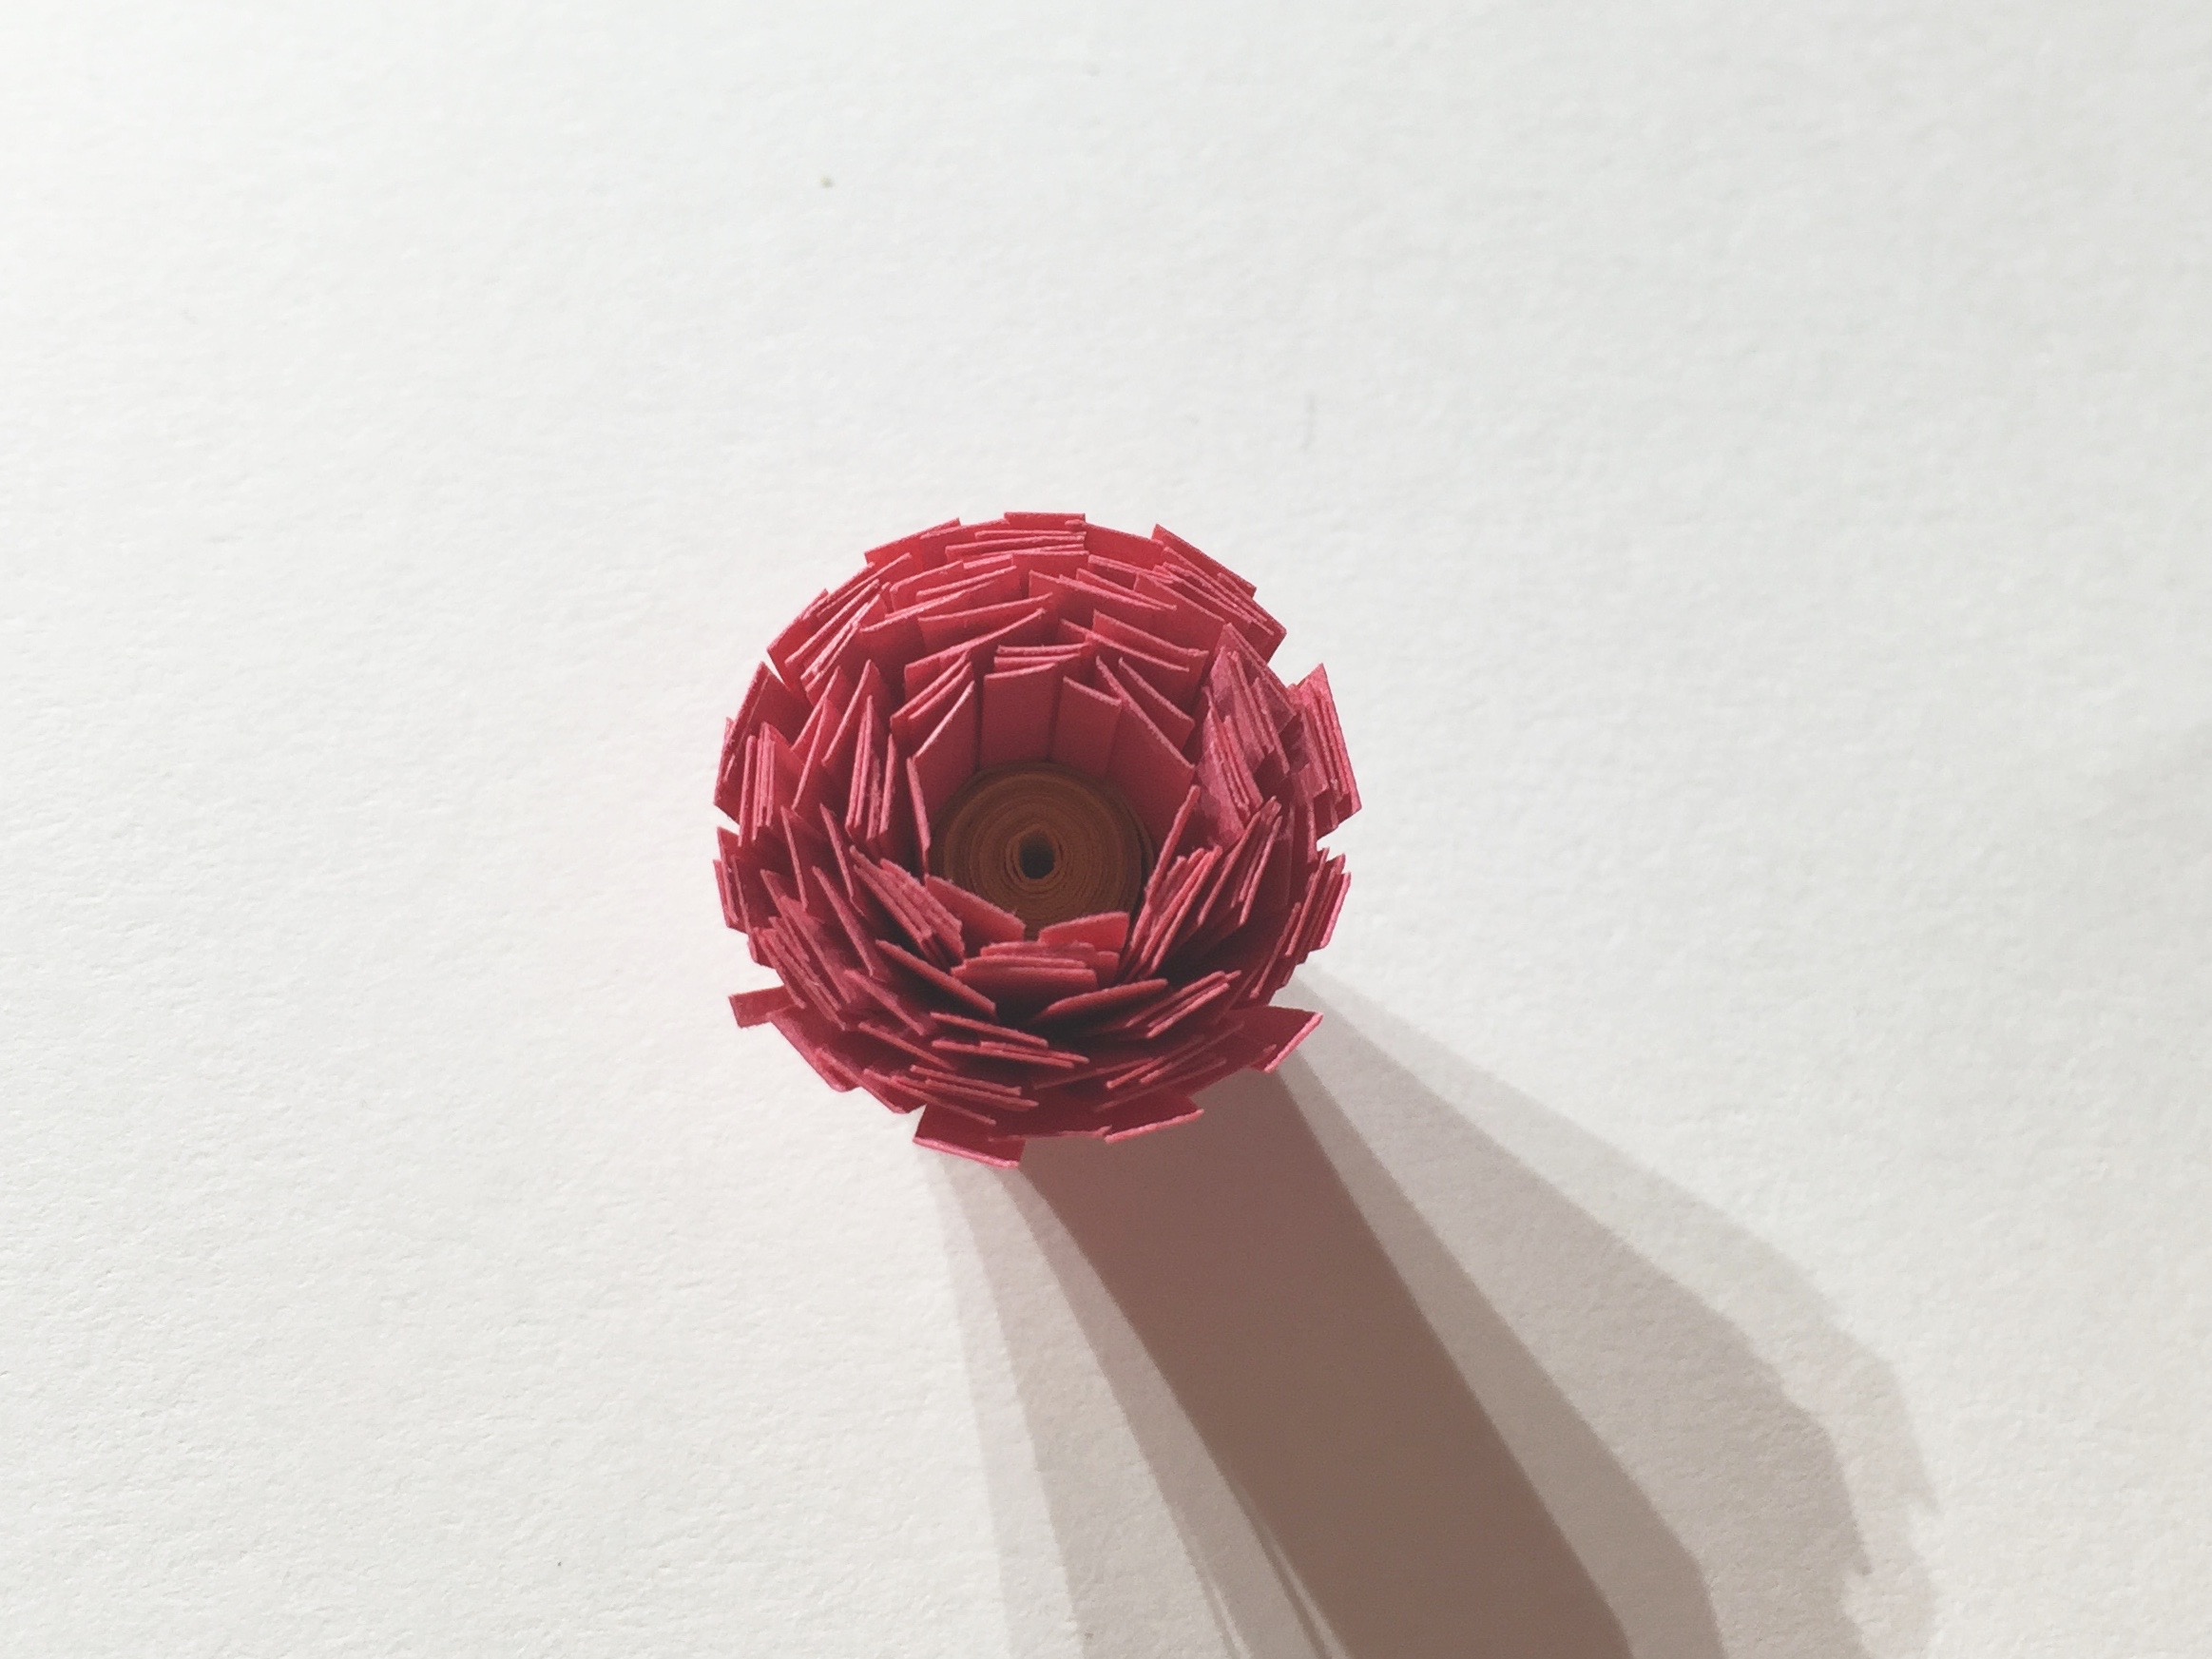 Image of fringed flower off the quilling tool.